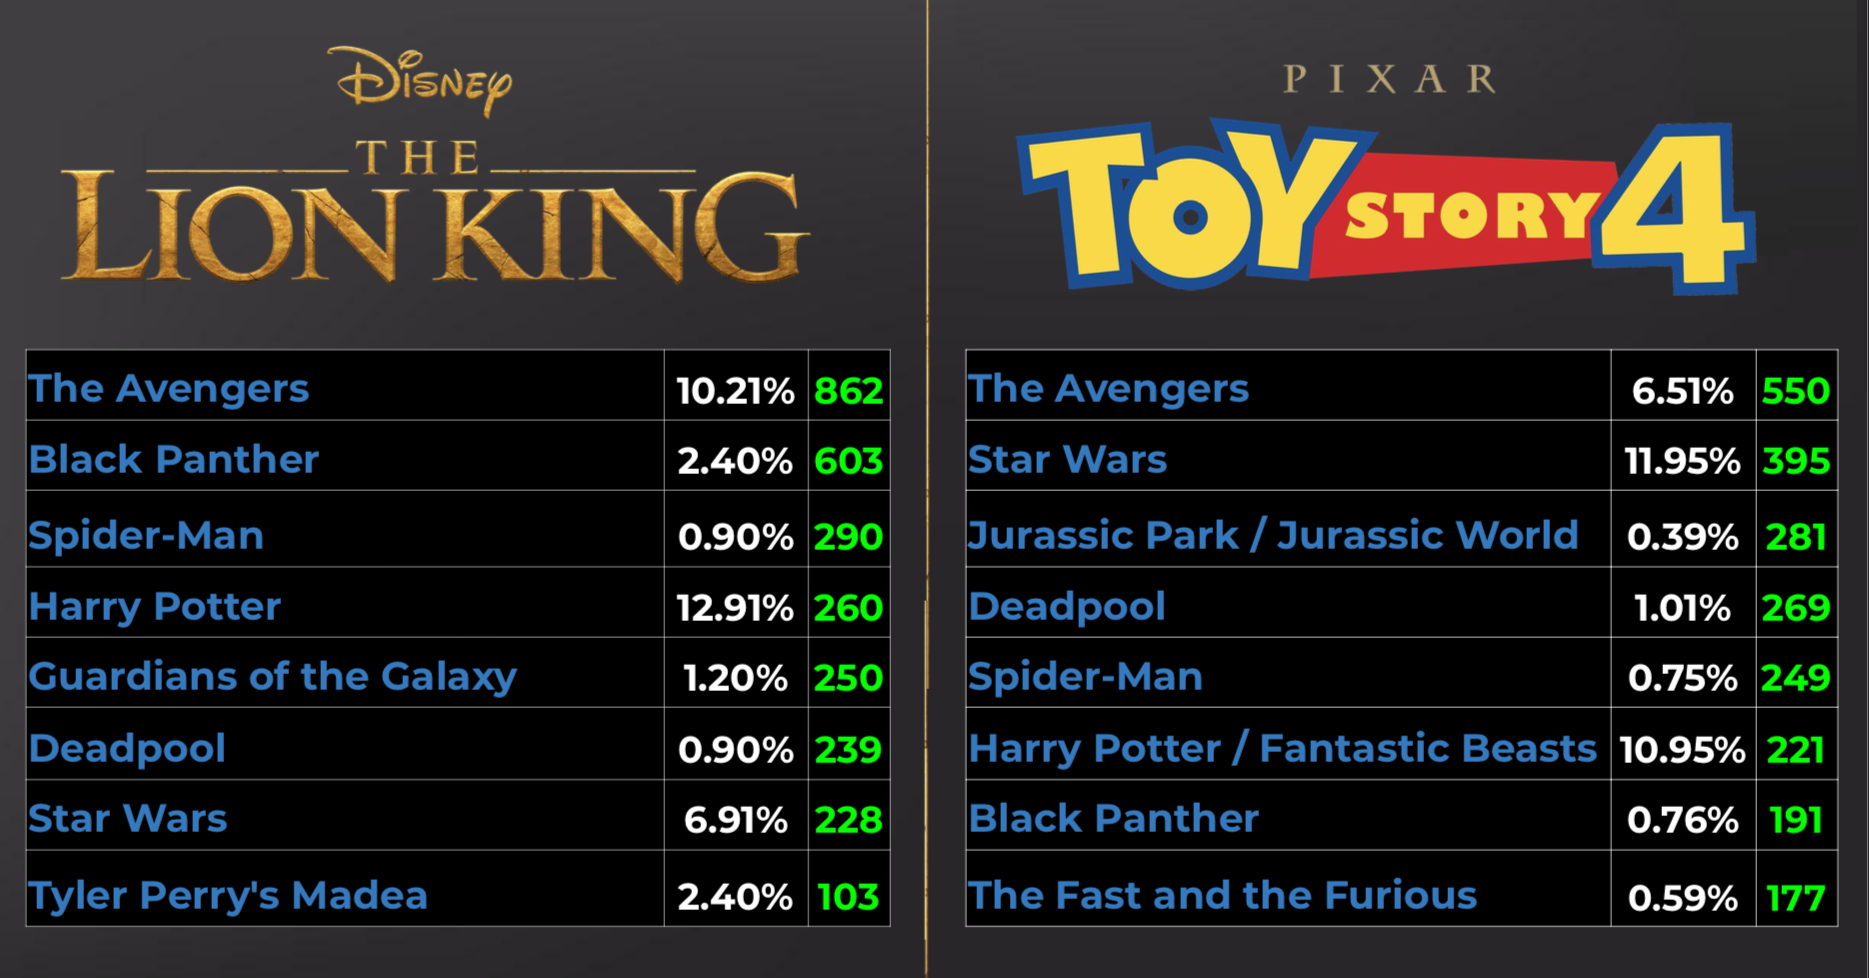 Attribution: Who watched 'The Lion King' & 'Toy Story 4'?